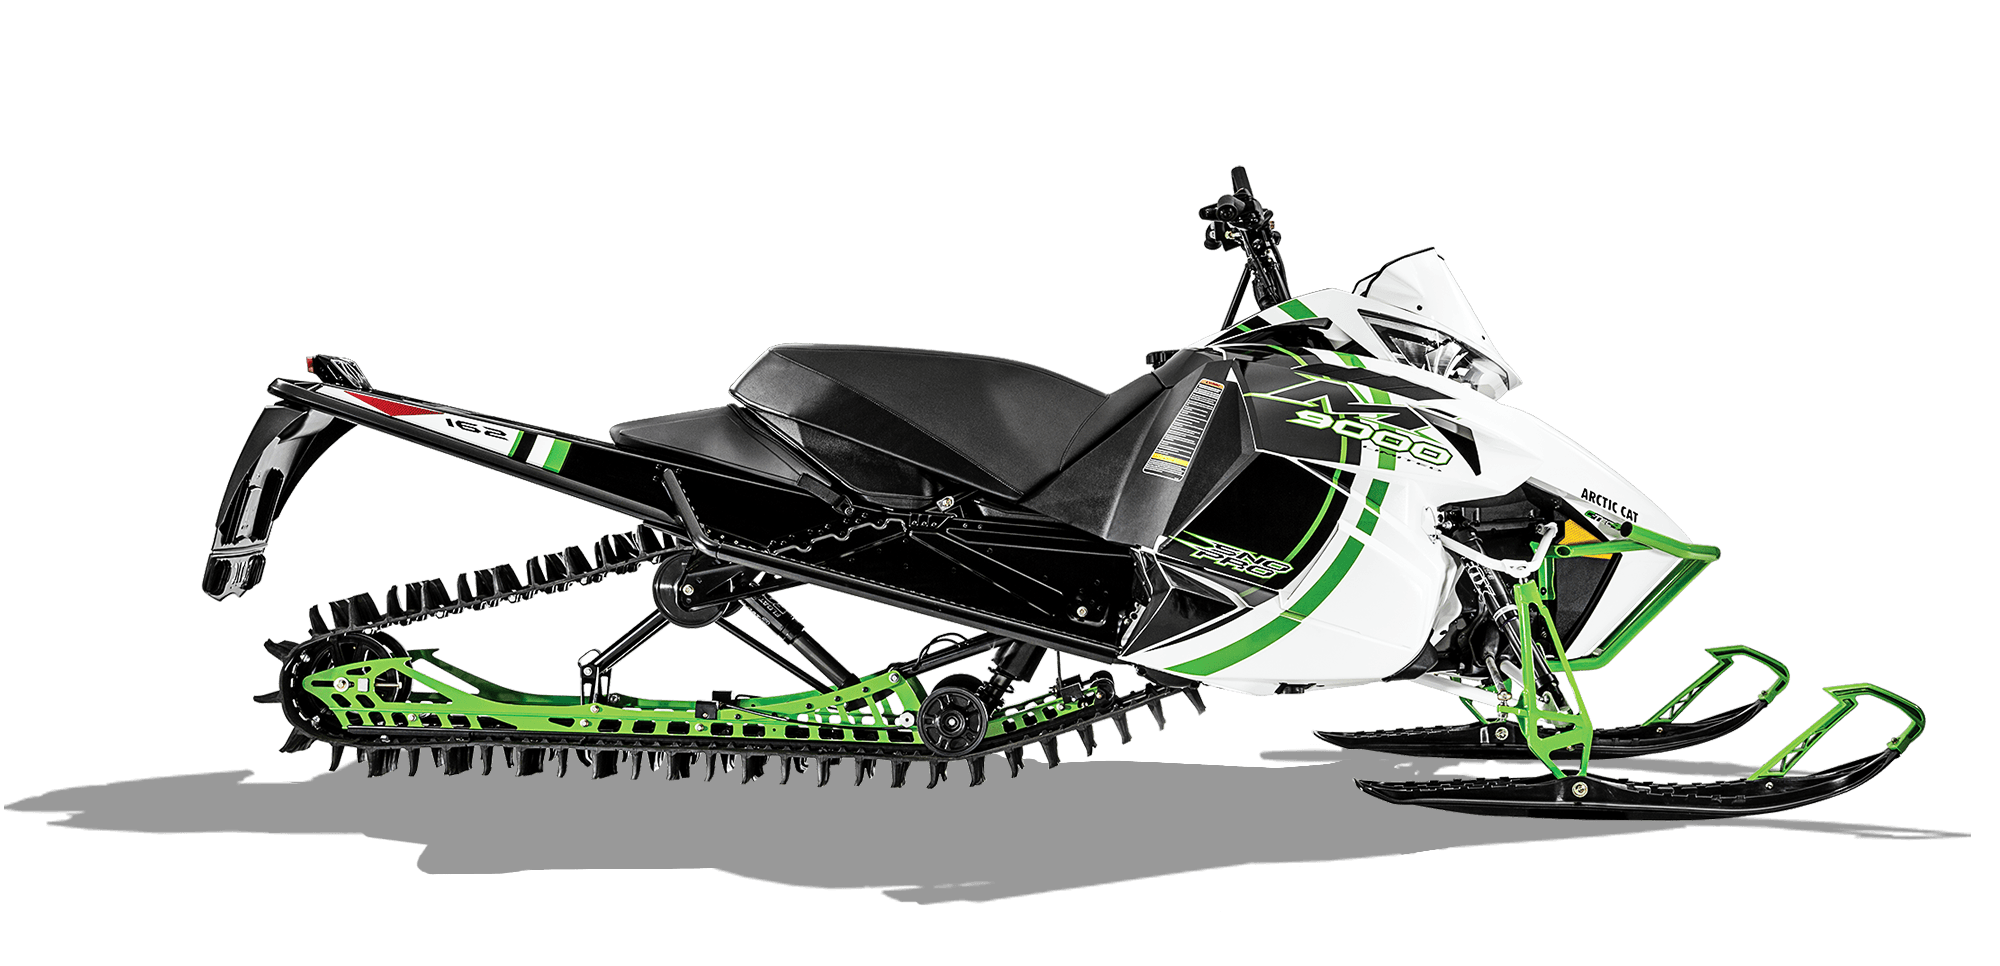 Artic cat snowmobile clipart black and white clip art royalty free download Models Archive | Arctic Cat clip art royalty free download